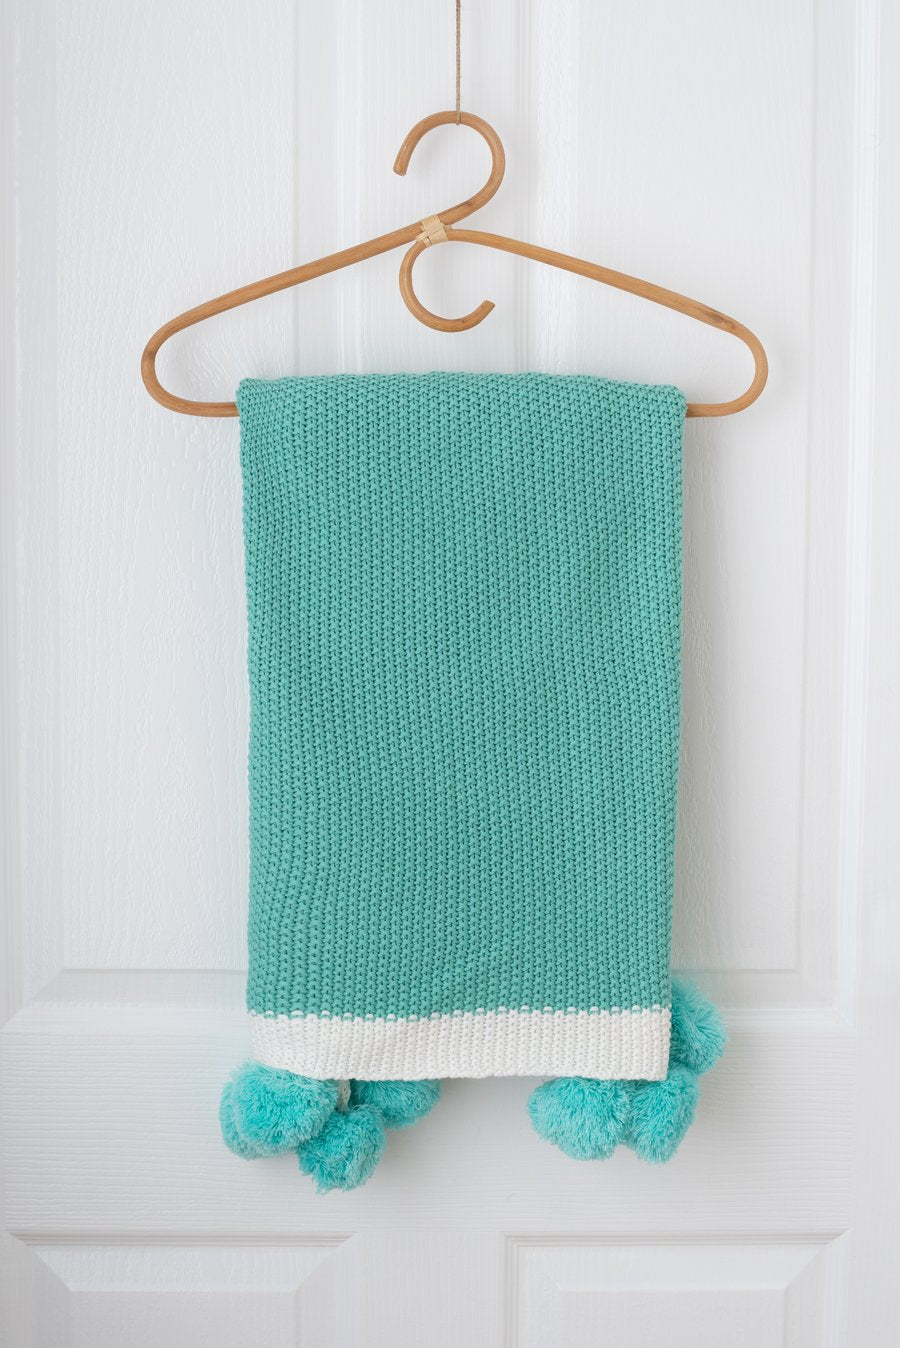 Kute Cuddles - Maize Knit Baby Blanket - Mint